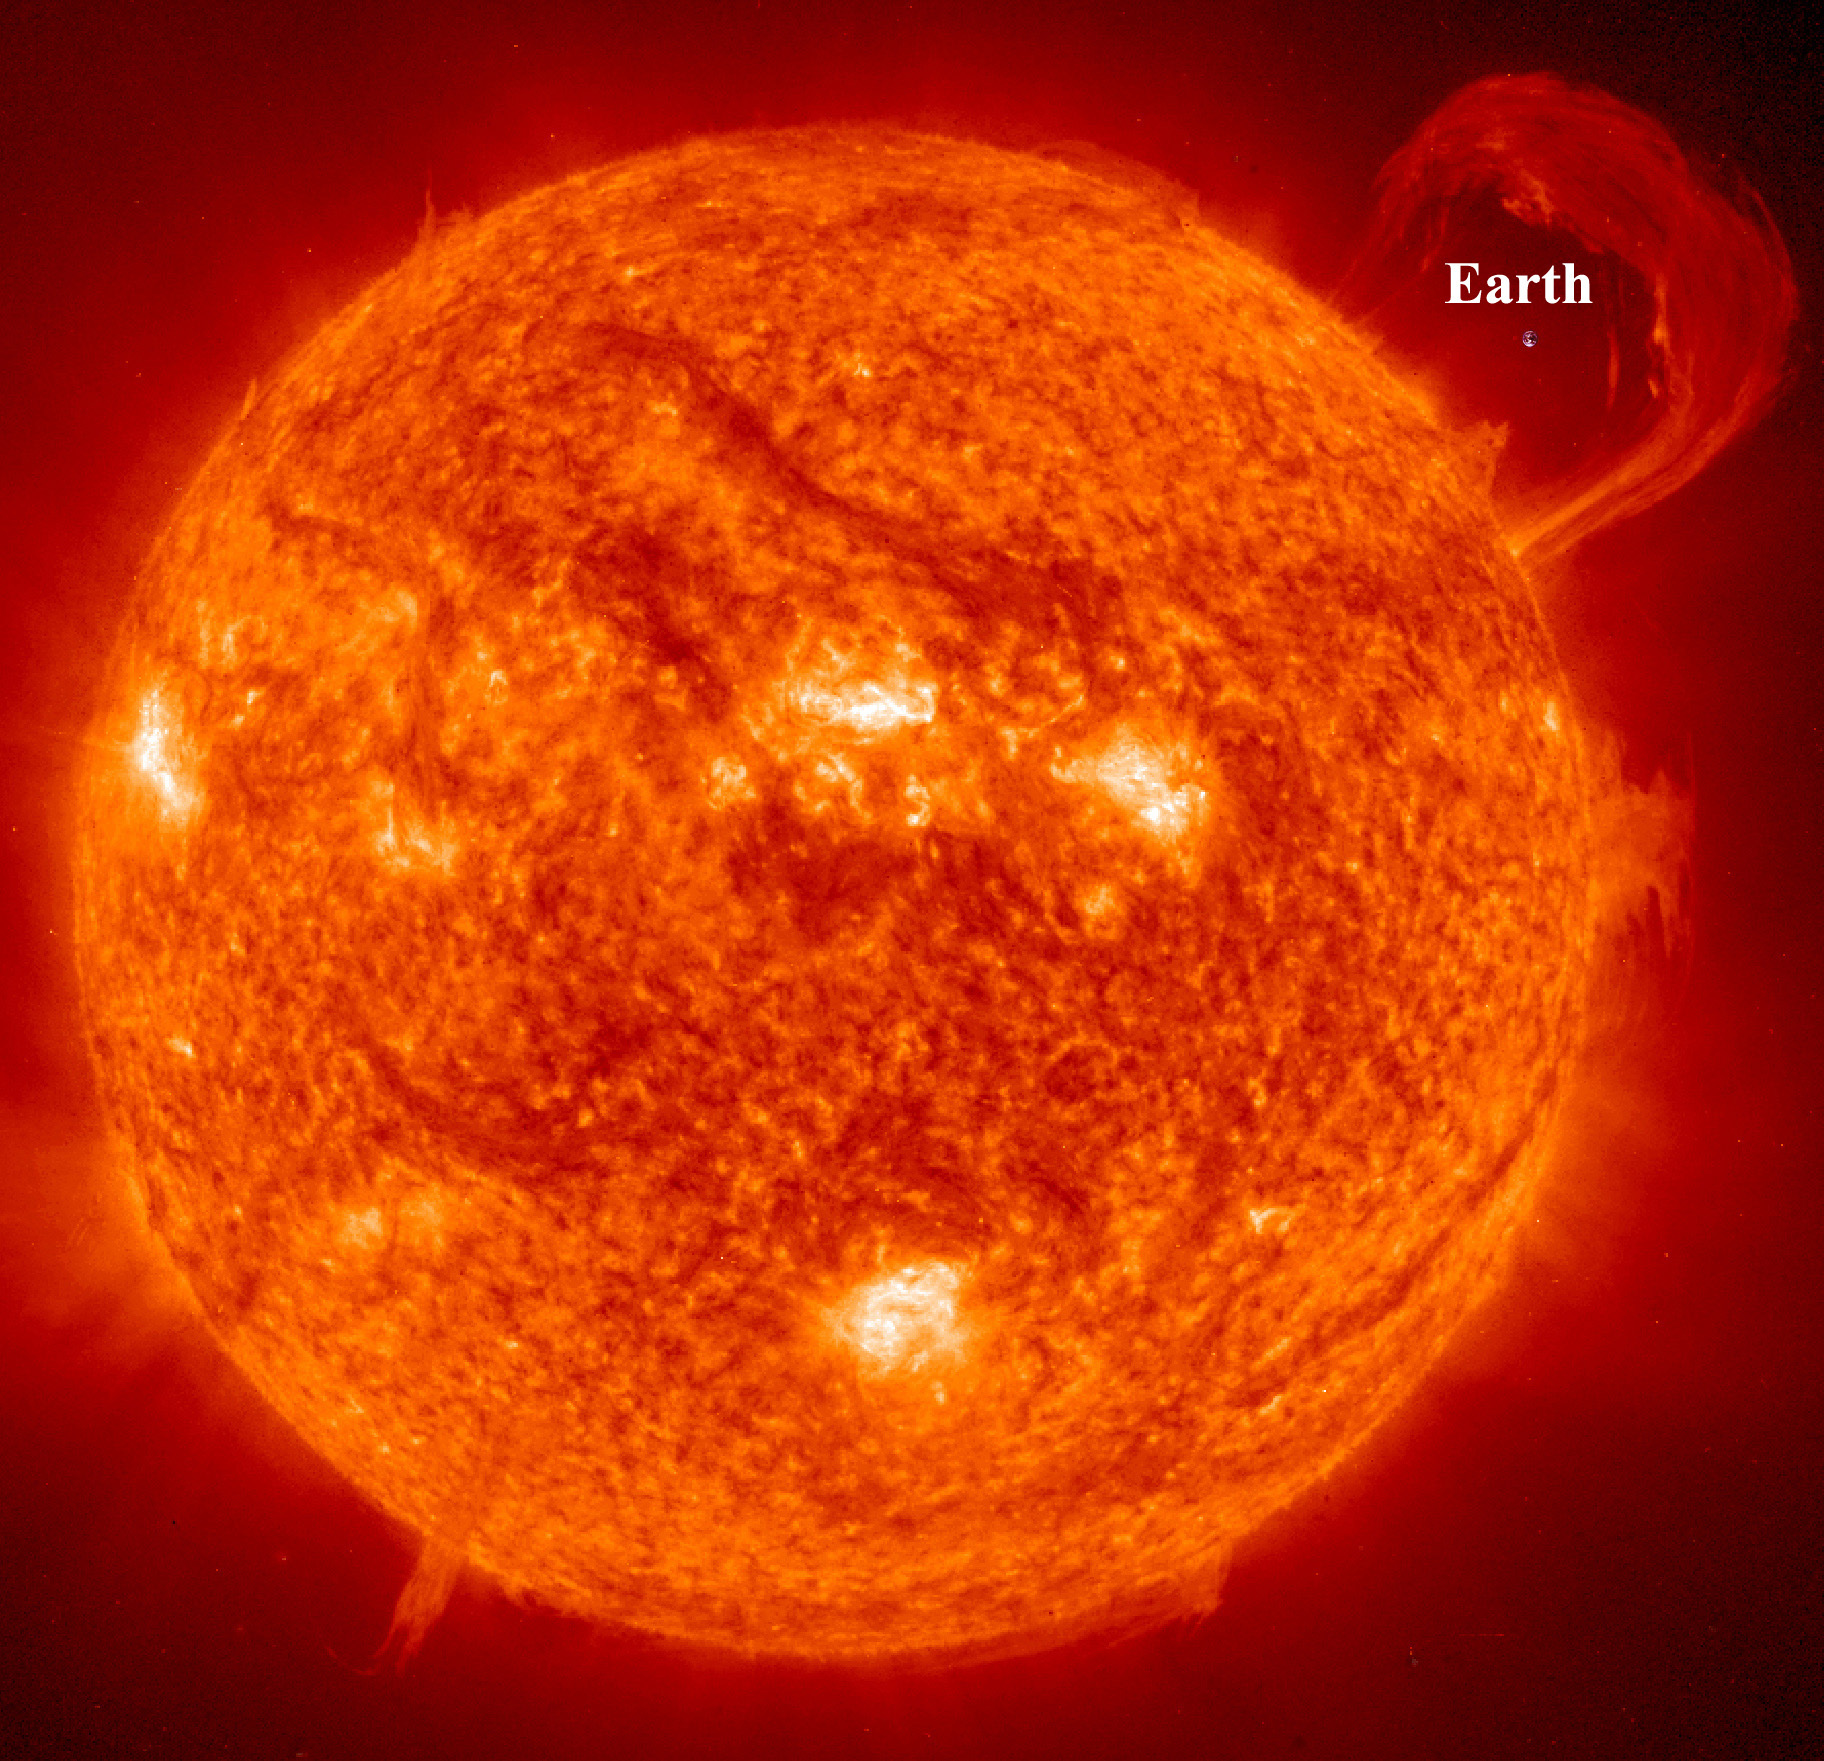 Pax on both houses: For 2013, Earth Is Farthest From Sun Today